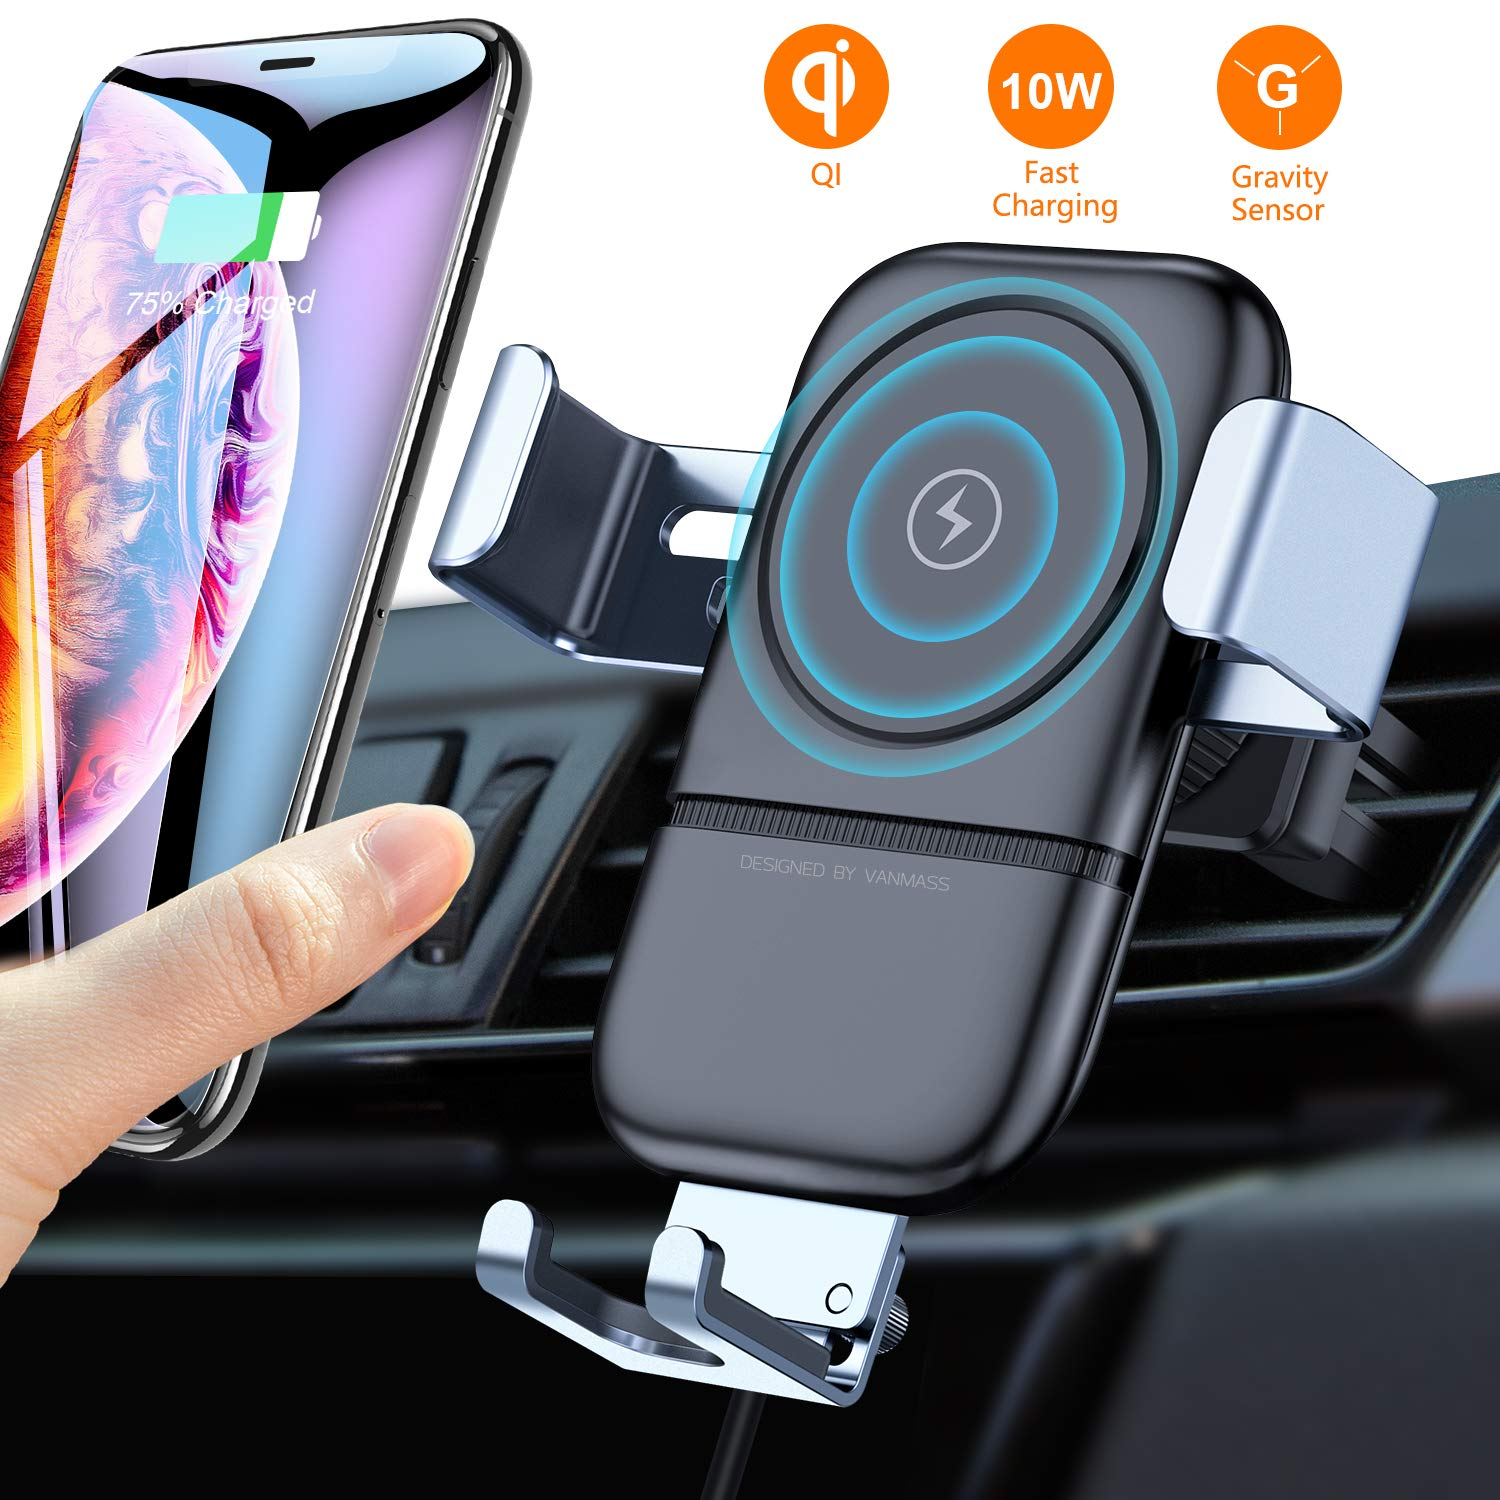 VANMASS Wireless Car Charger Mount, Automatic Clamping Gravity Sensor Car Phone Mount, 10W 7.5W Qi Fast Charging Air Vent Phone Holder Compatible with S10+ S10e S9 Note 9, Phone Xs Max XR X 8 Plus